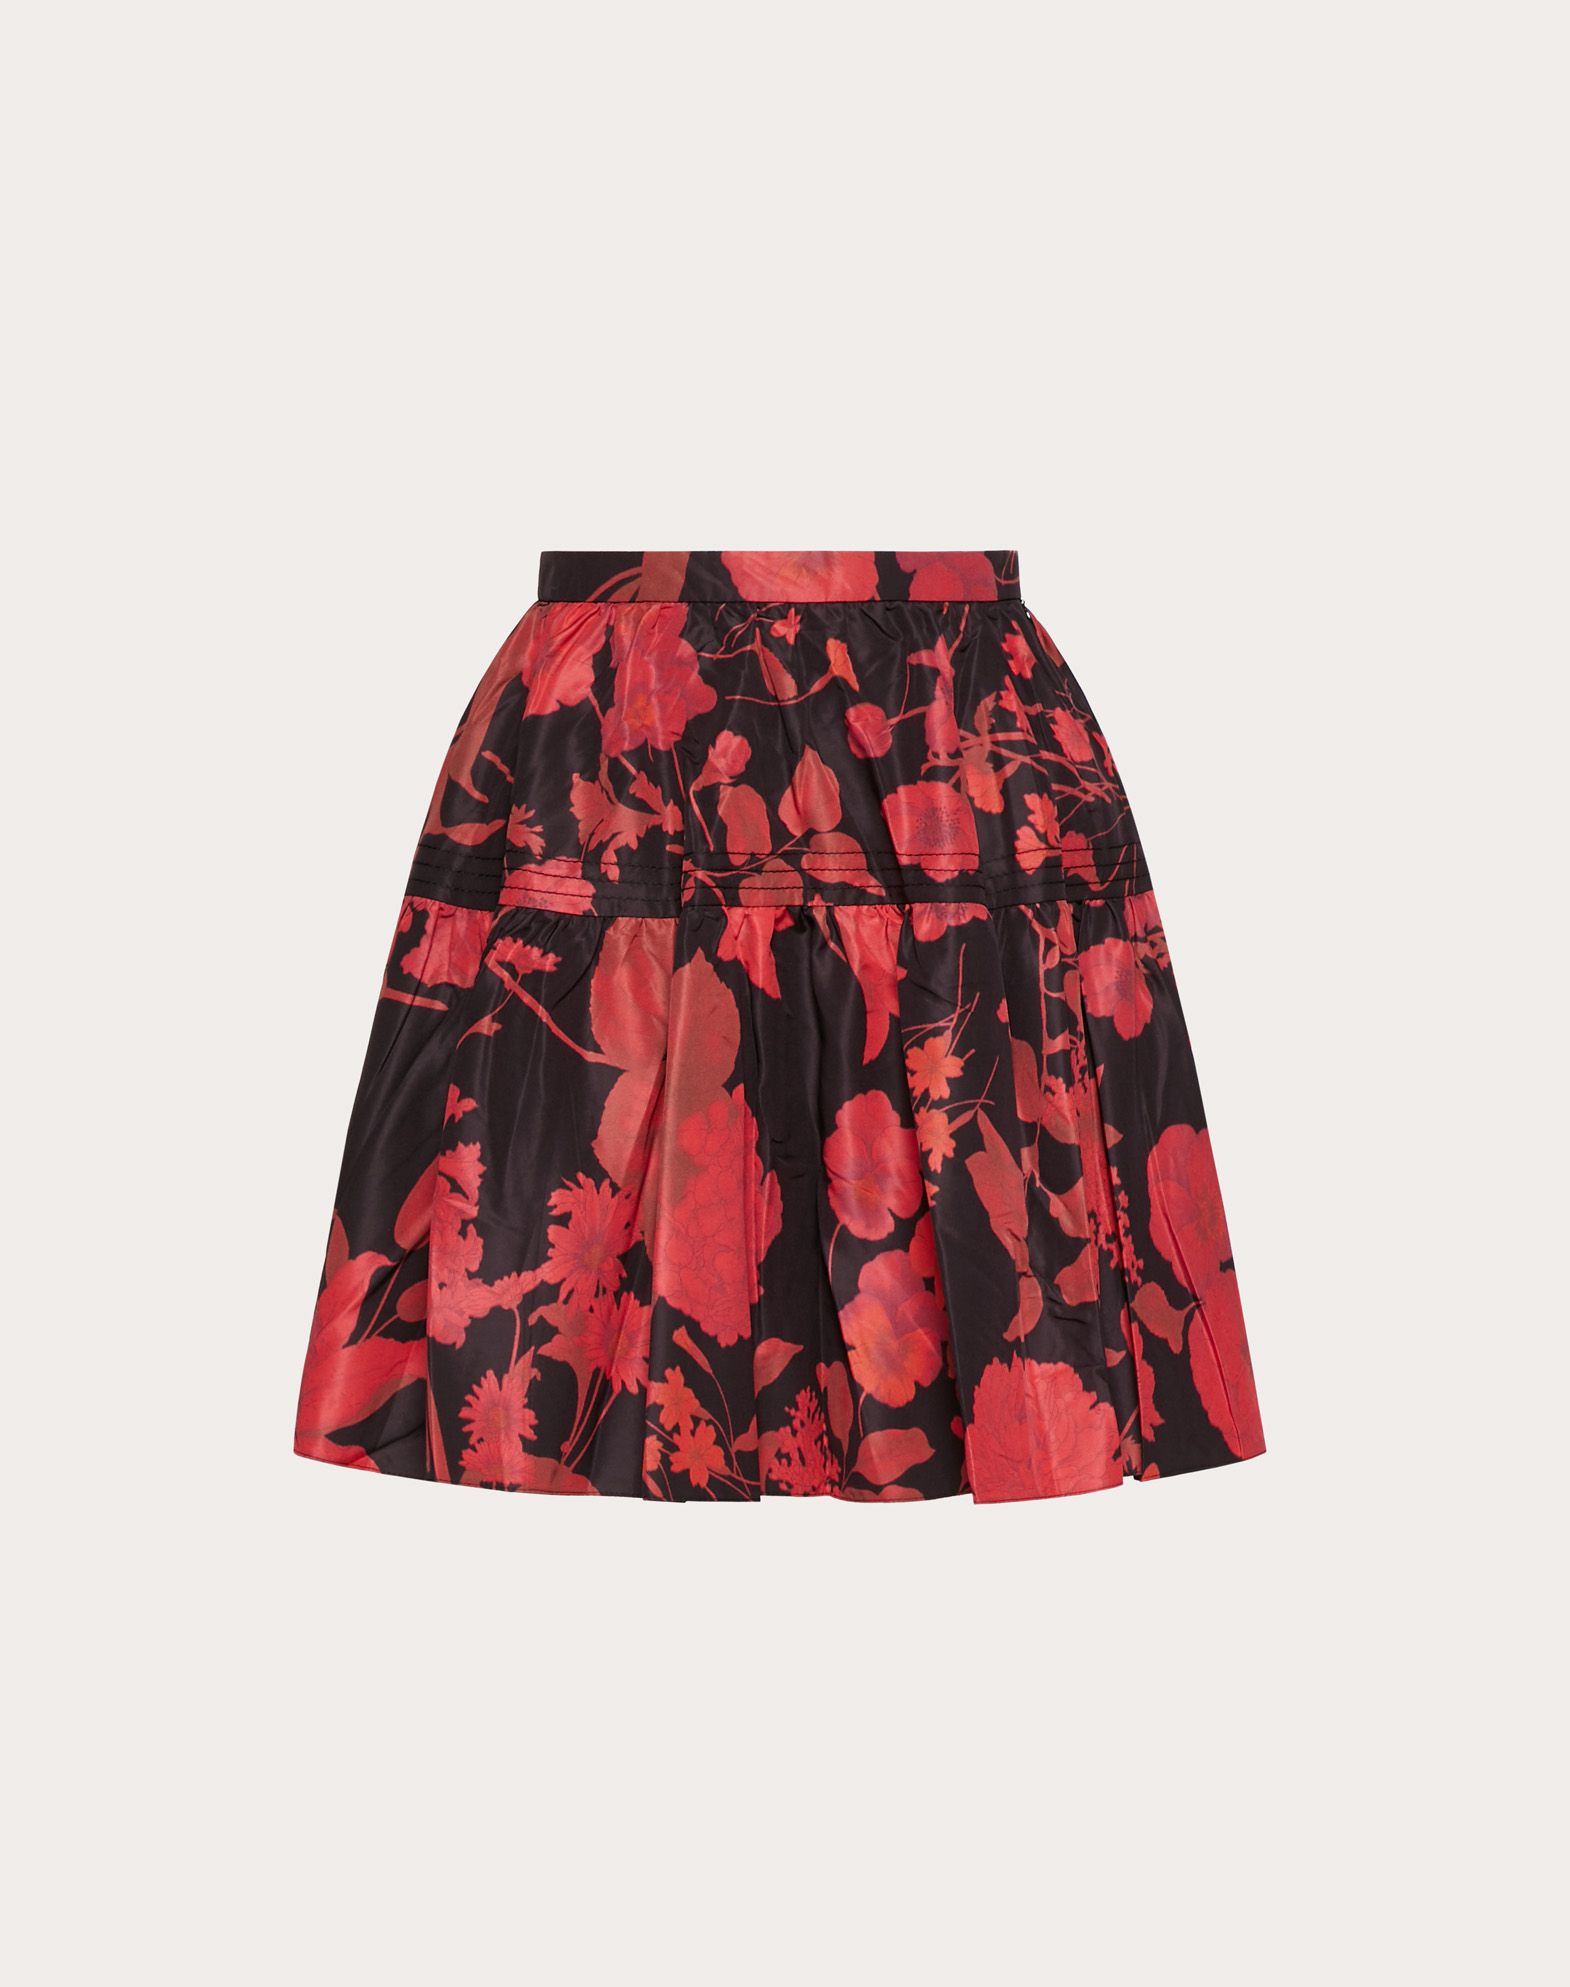 OVERDYED MICRO FAILLE SKIRT WITH DOUBLE FLOWER PRINT